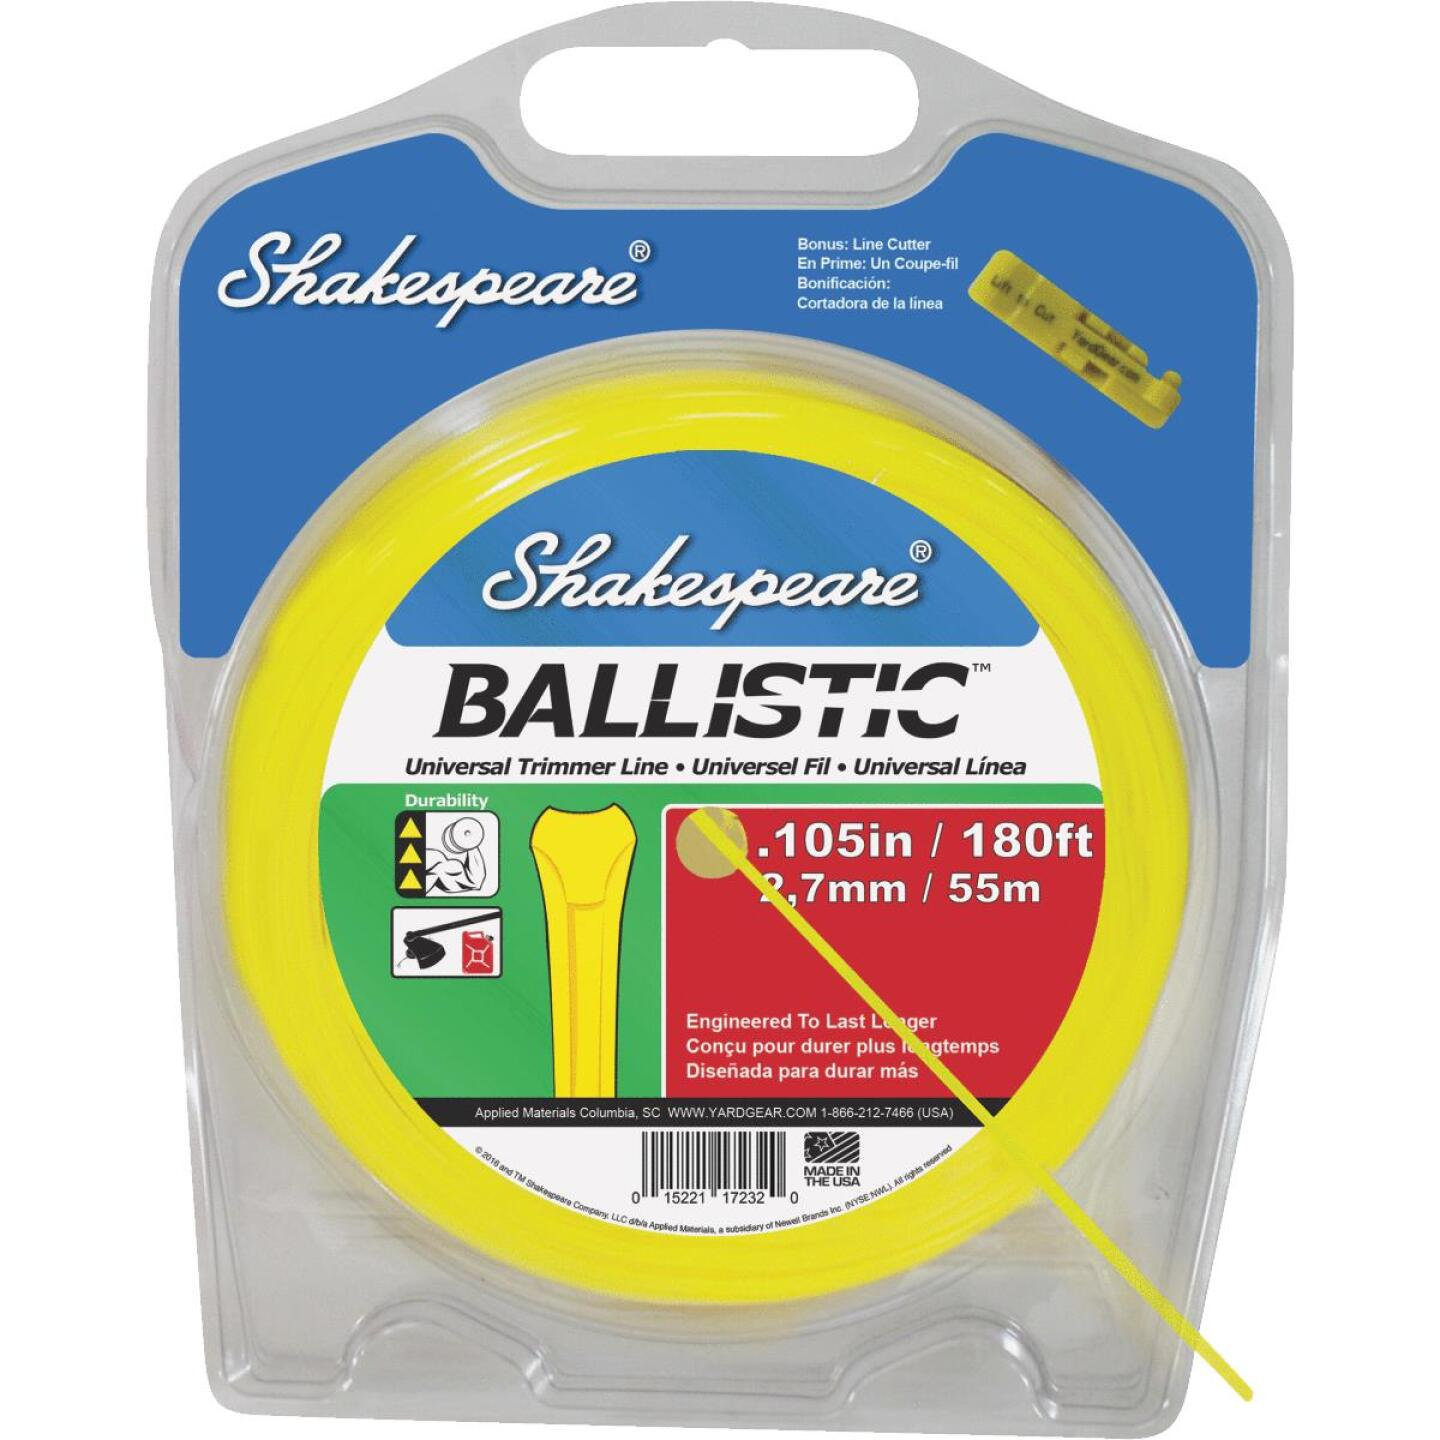 Shakespeare Ballistic 0.105 In.x 245 Ft. Universal Trimmer Line Image 1